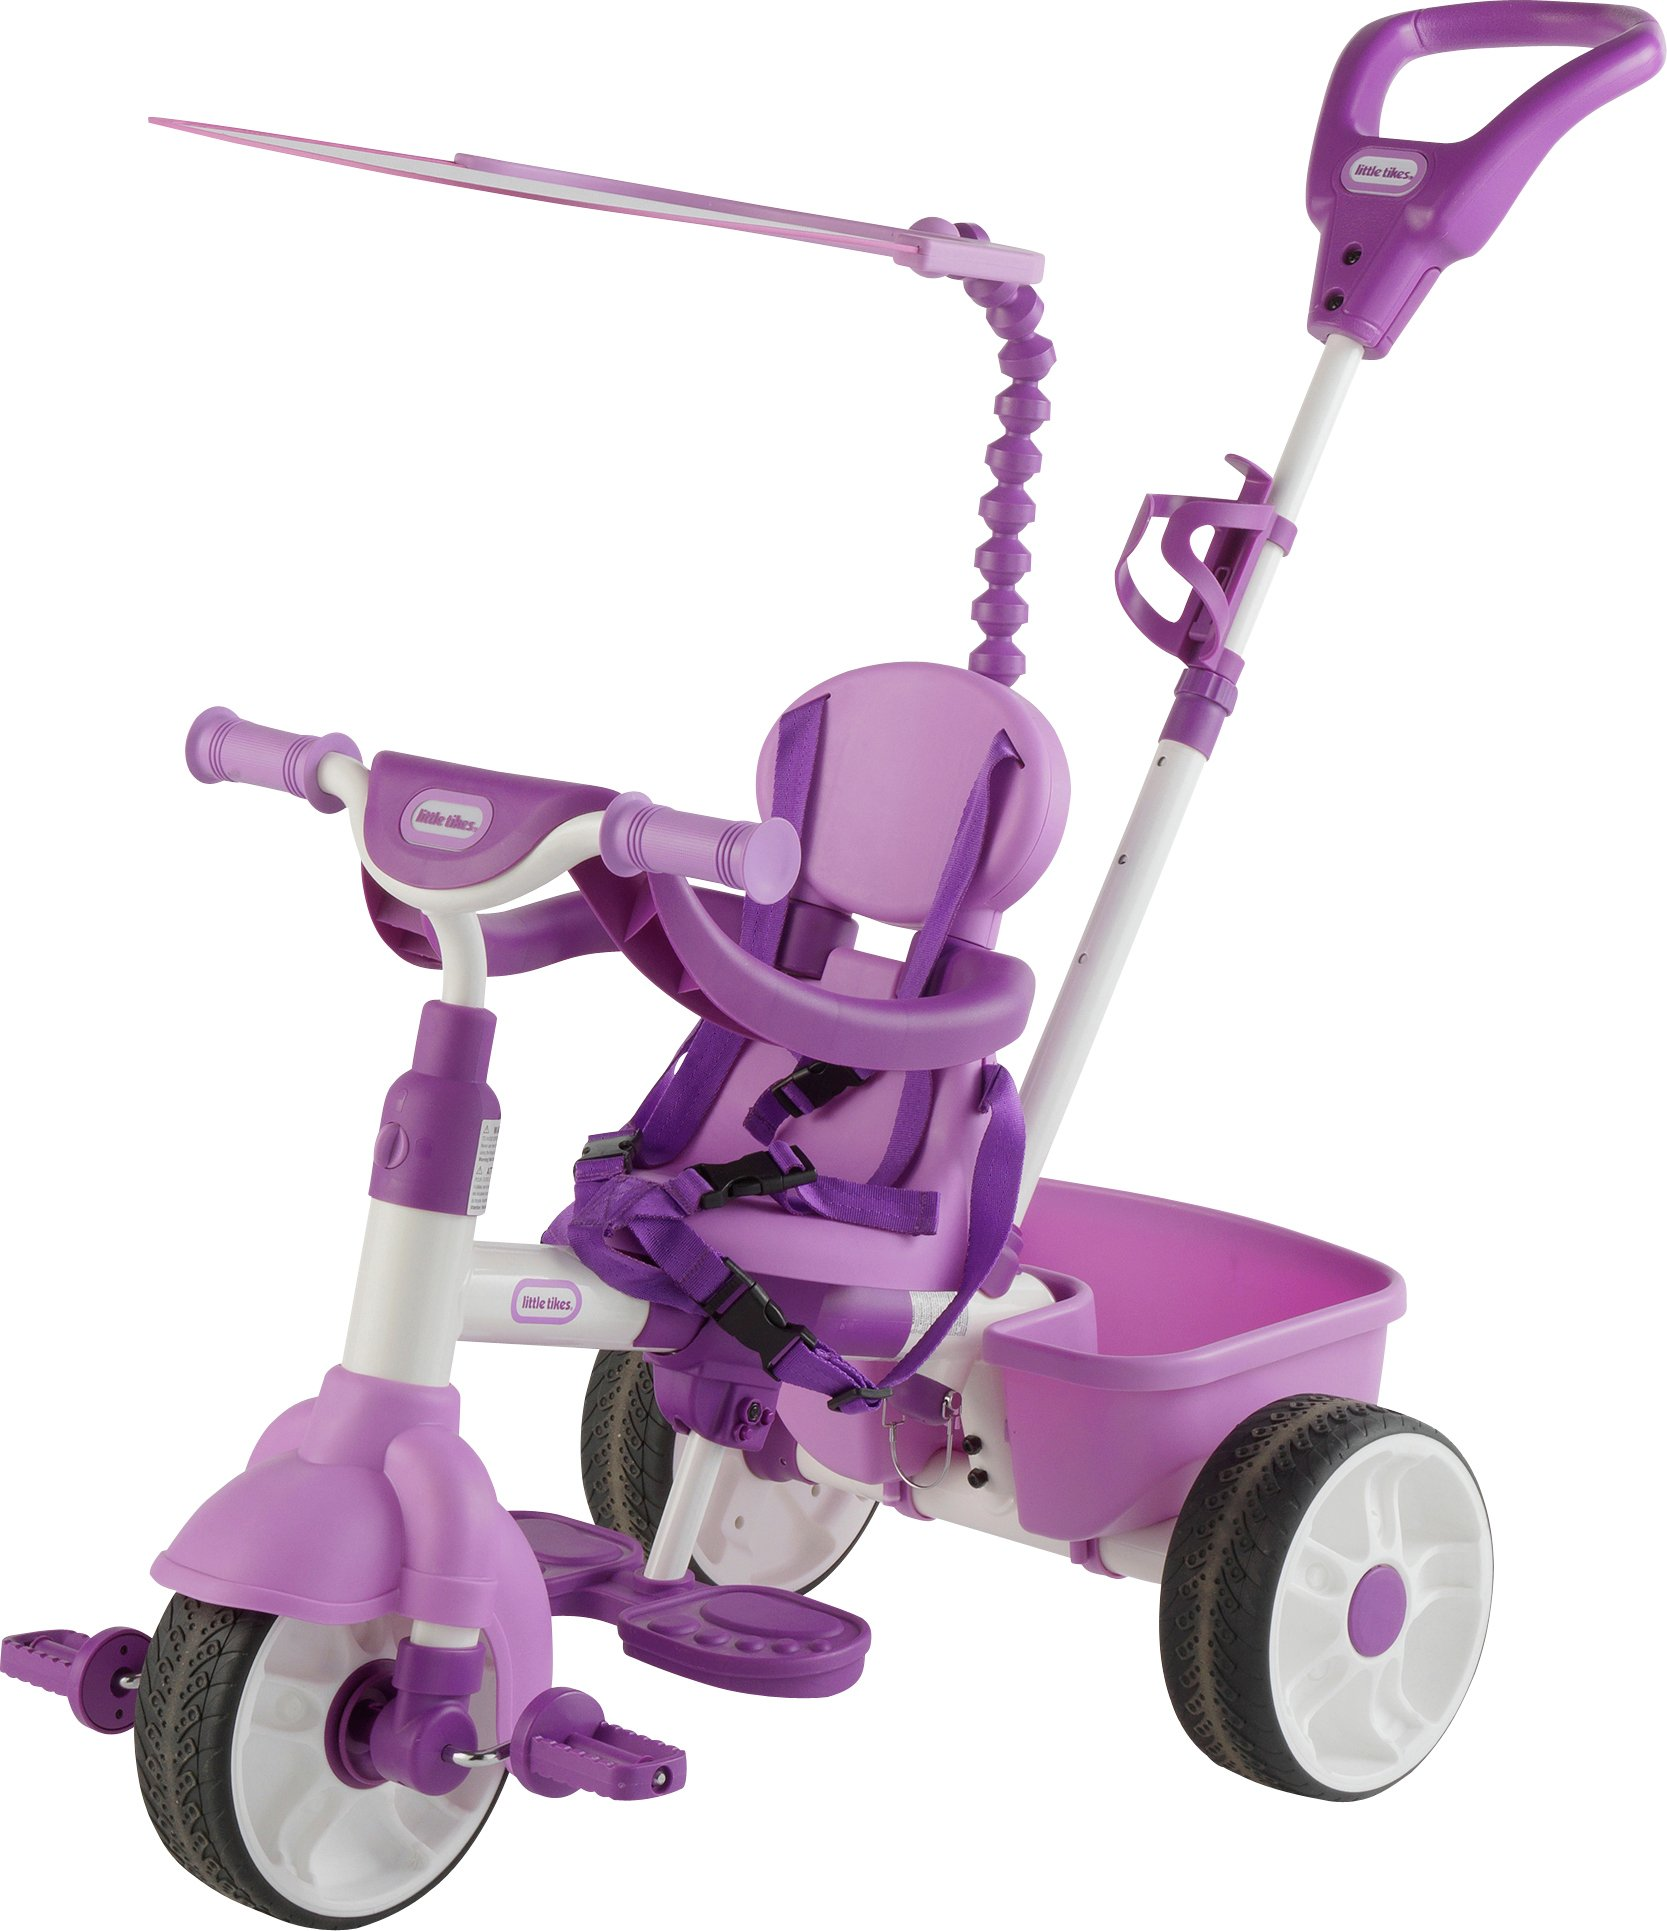 Image of Little Tikes - 4-in-1 Trike - Pink